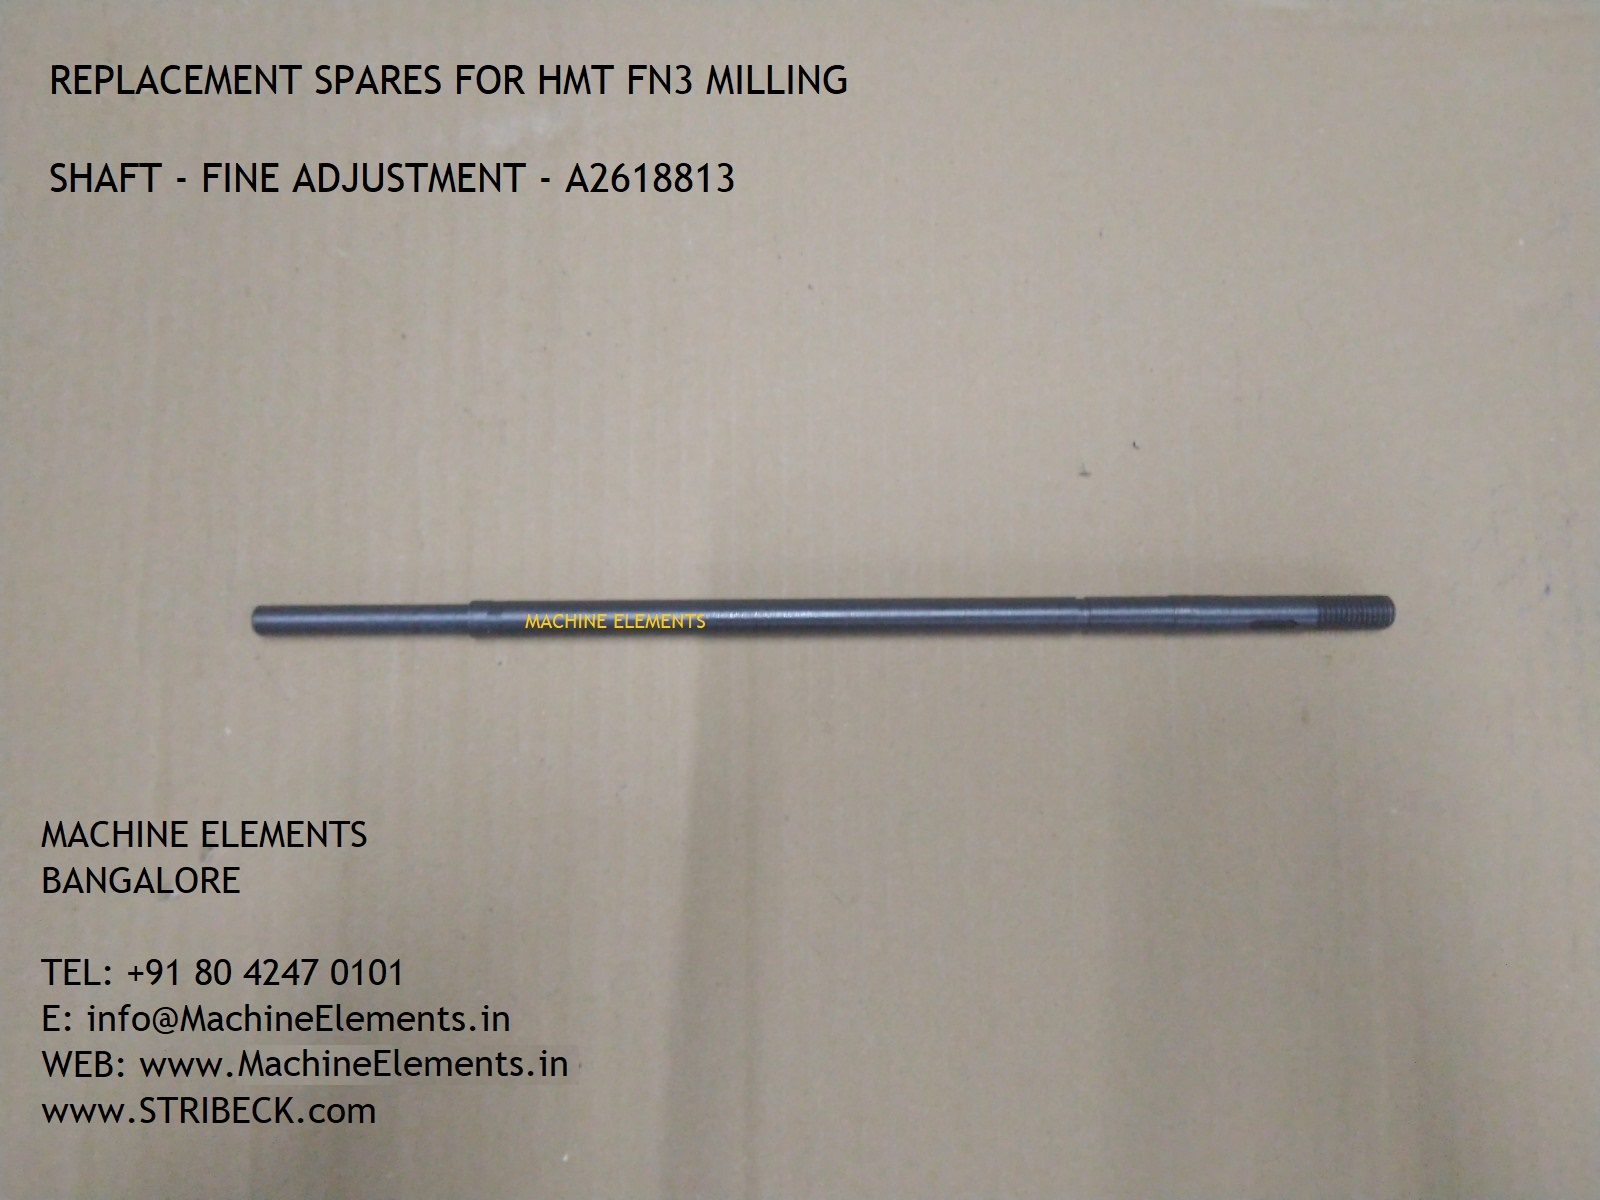 A2618813 - shaft - fine adjustment